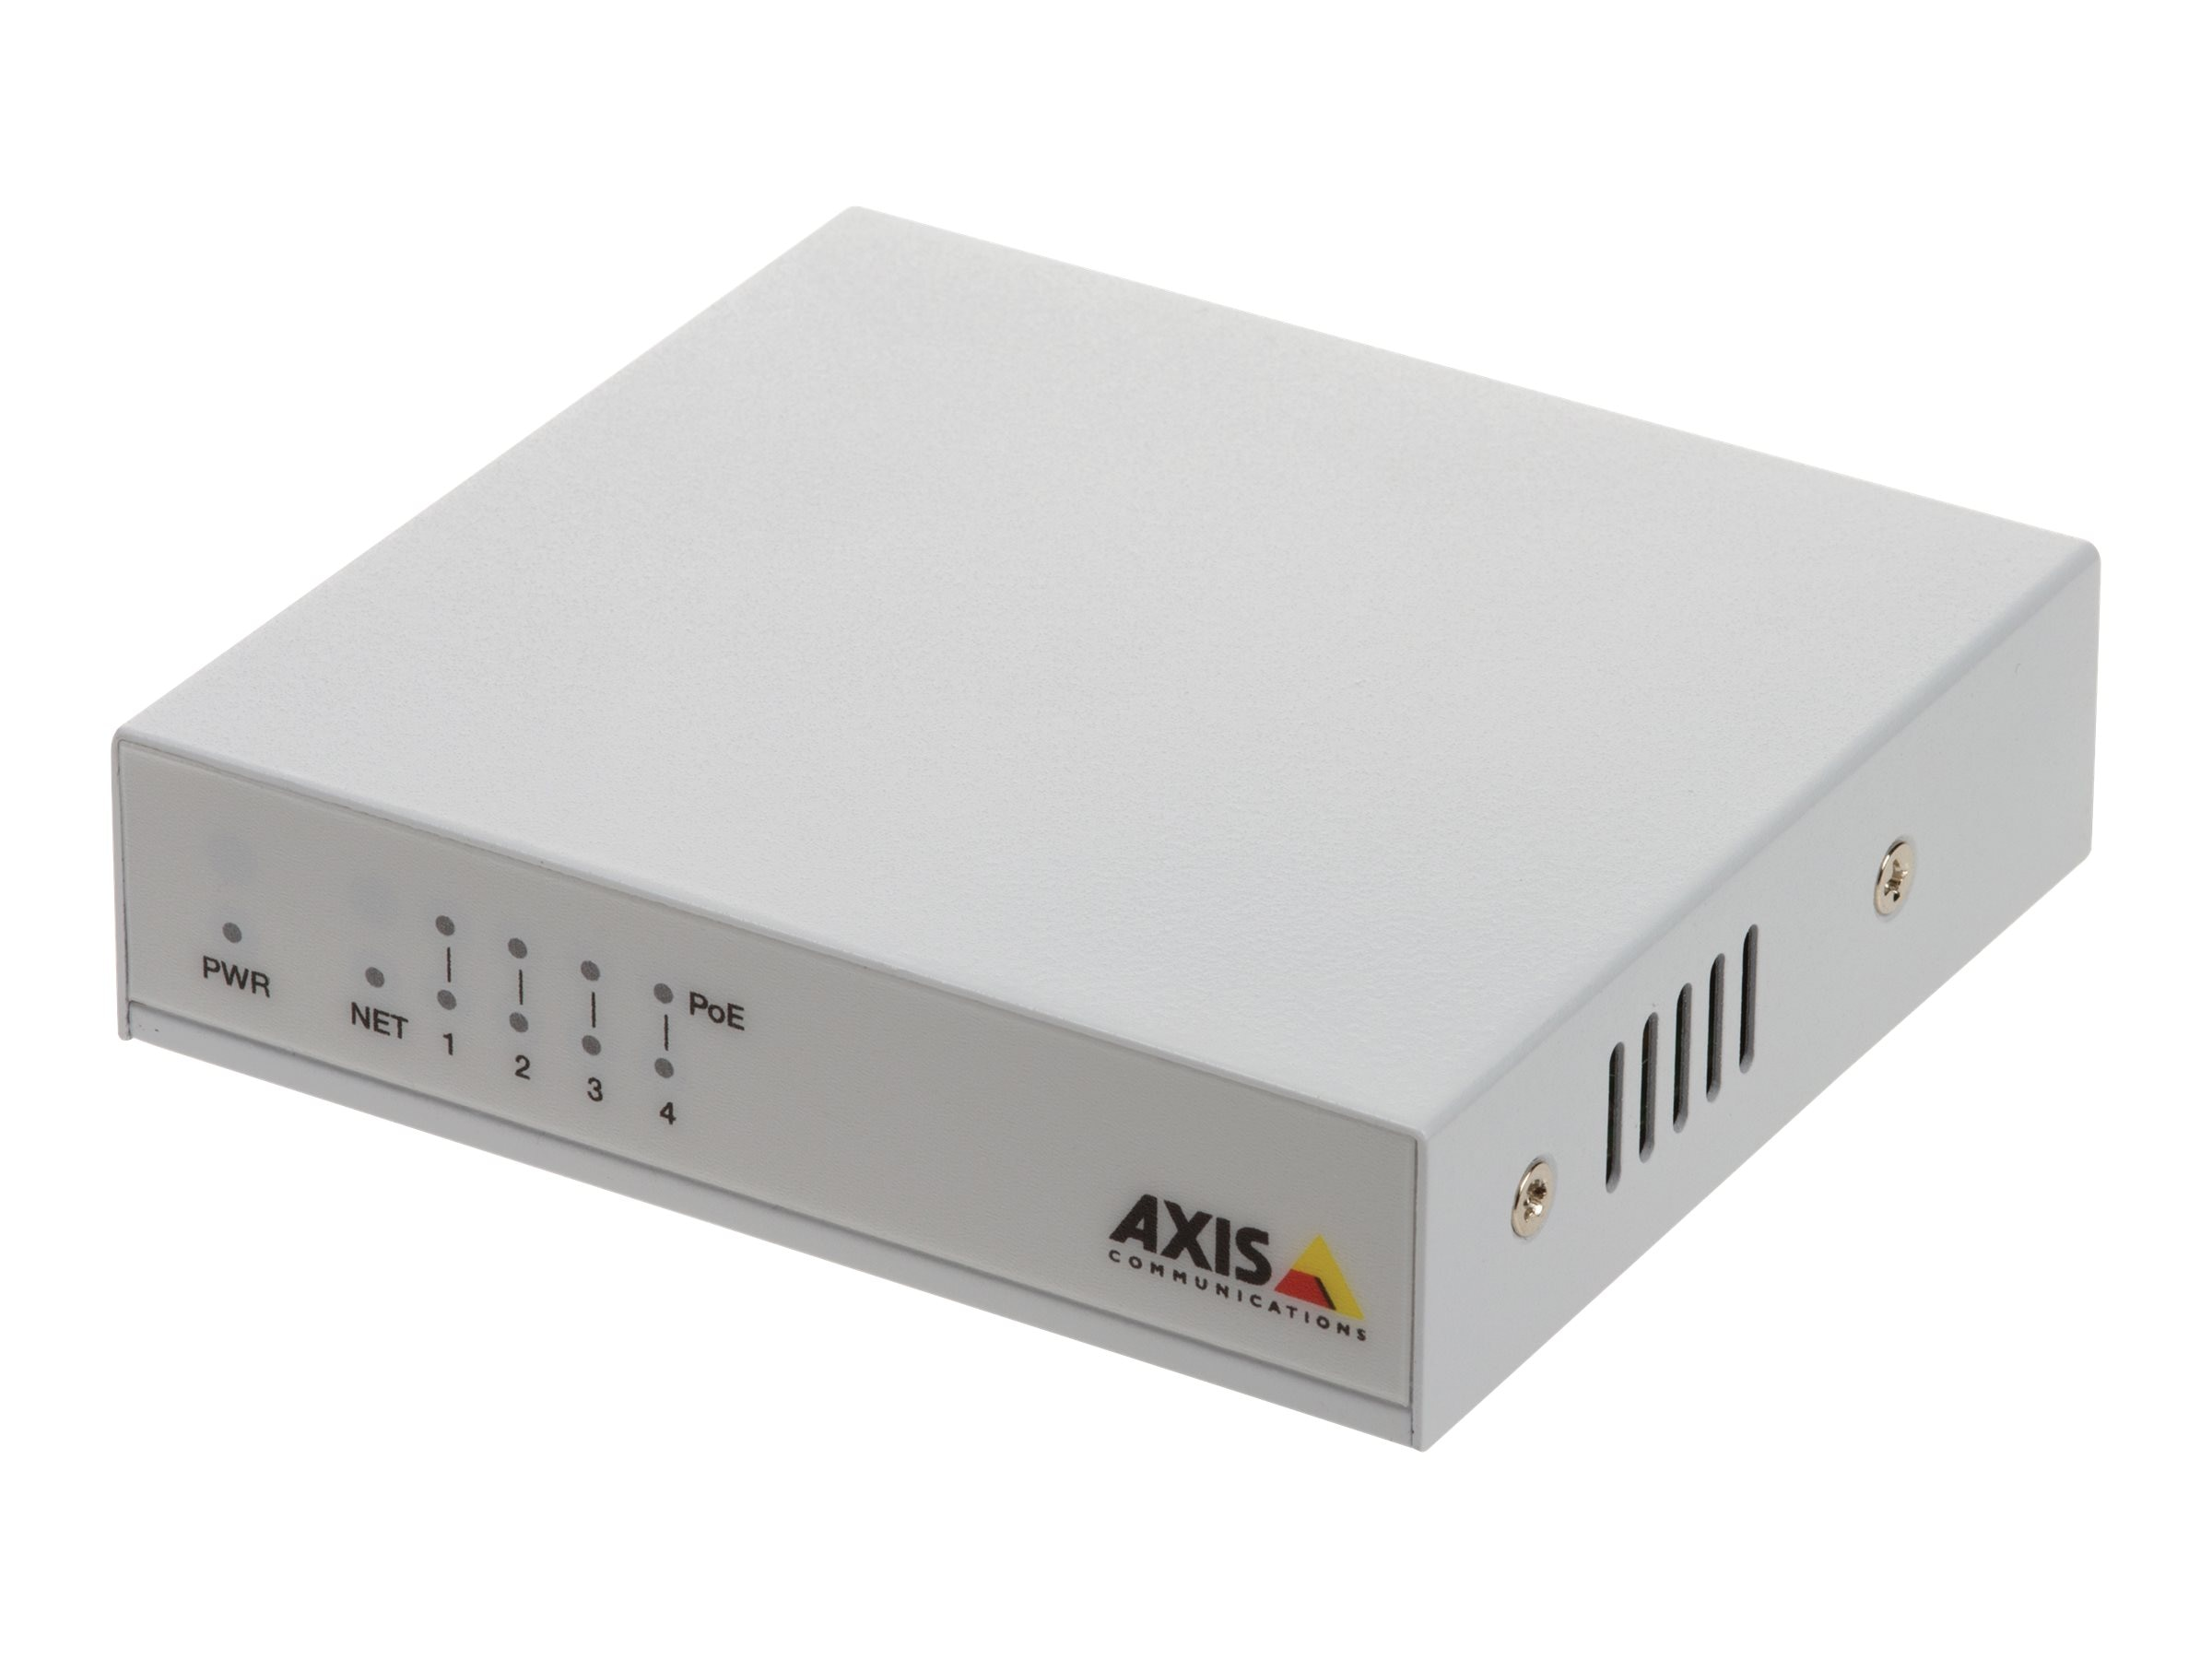 Axis Companion 4-Port FE PoE+ Switch